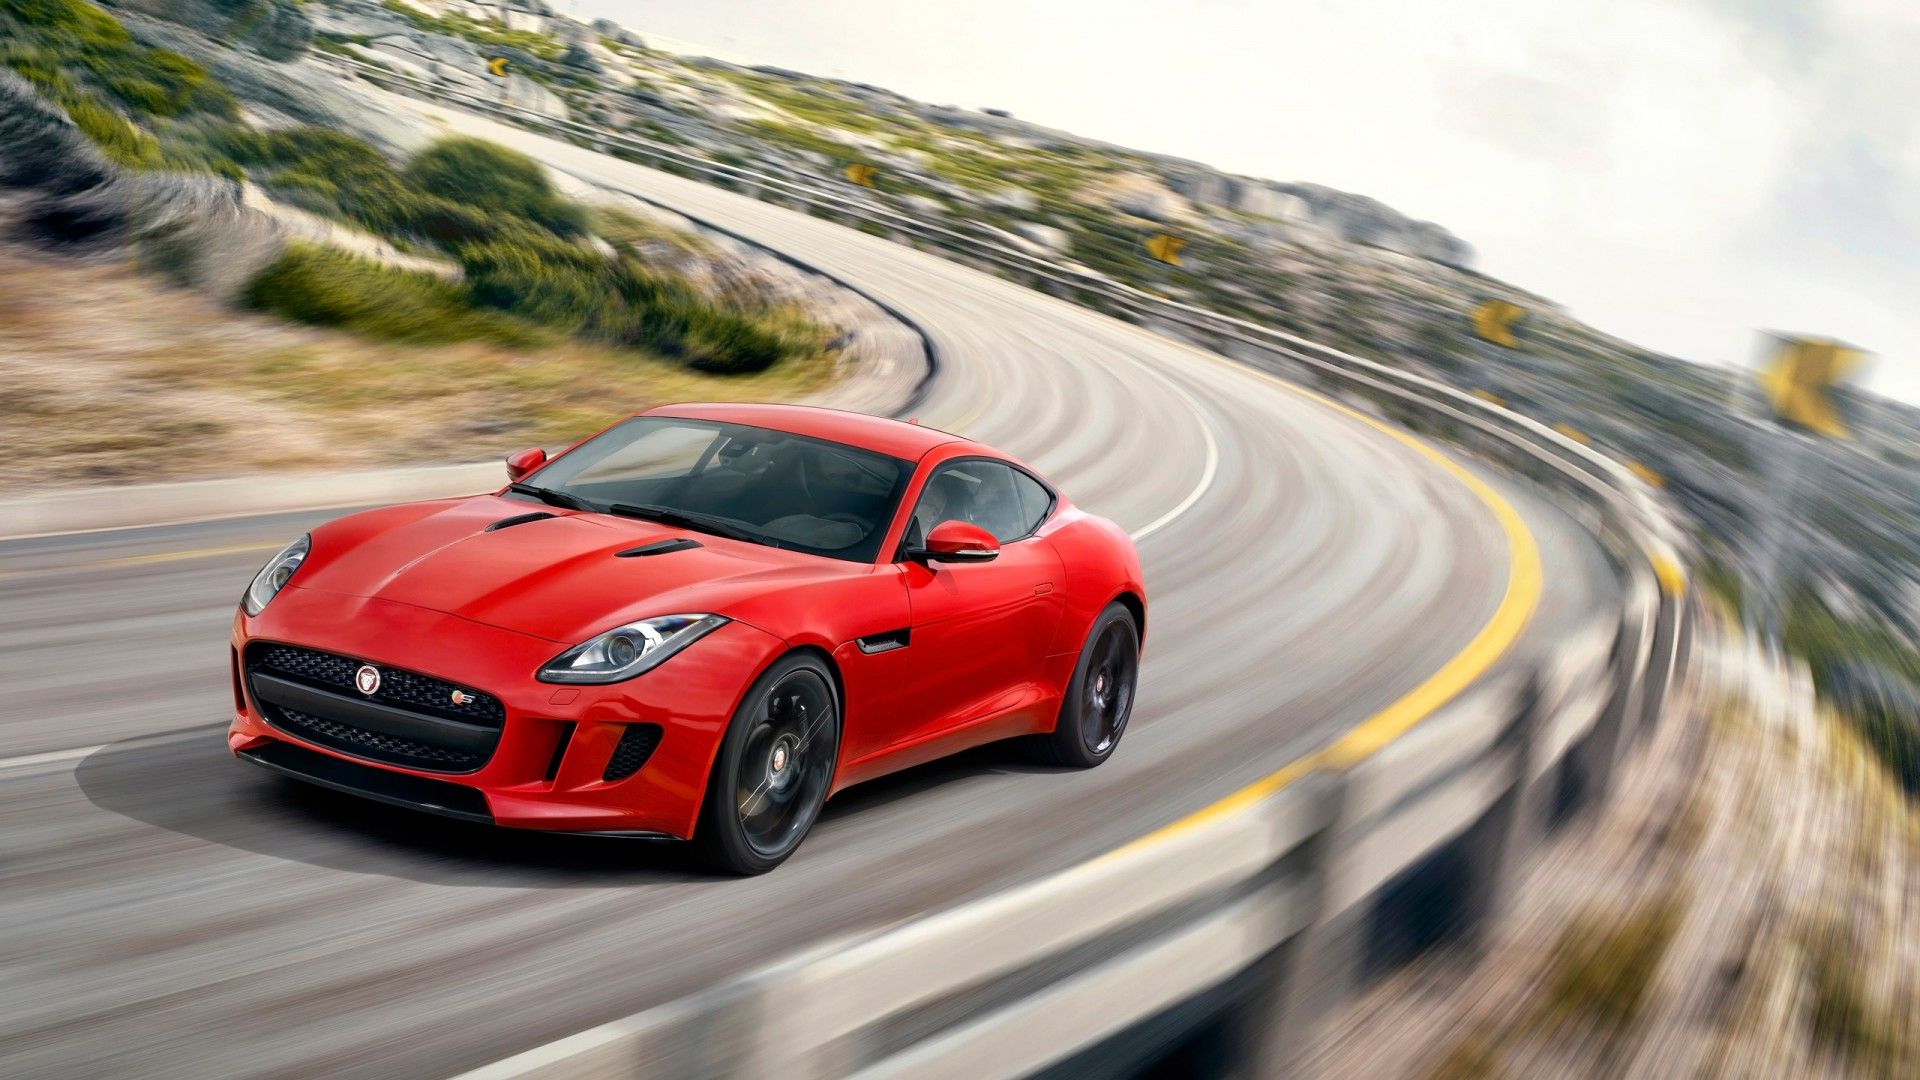 Acura Type R >> 2014 Jaguar F Type R Coupe Salsa Red Wallpaper | HD Car Wallpapers | ID #4177